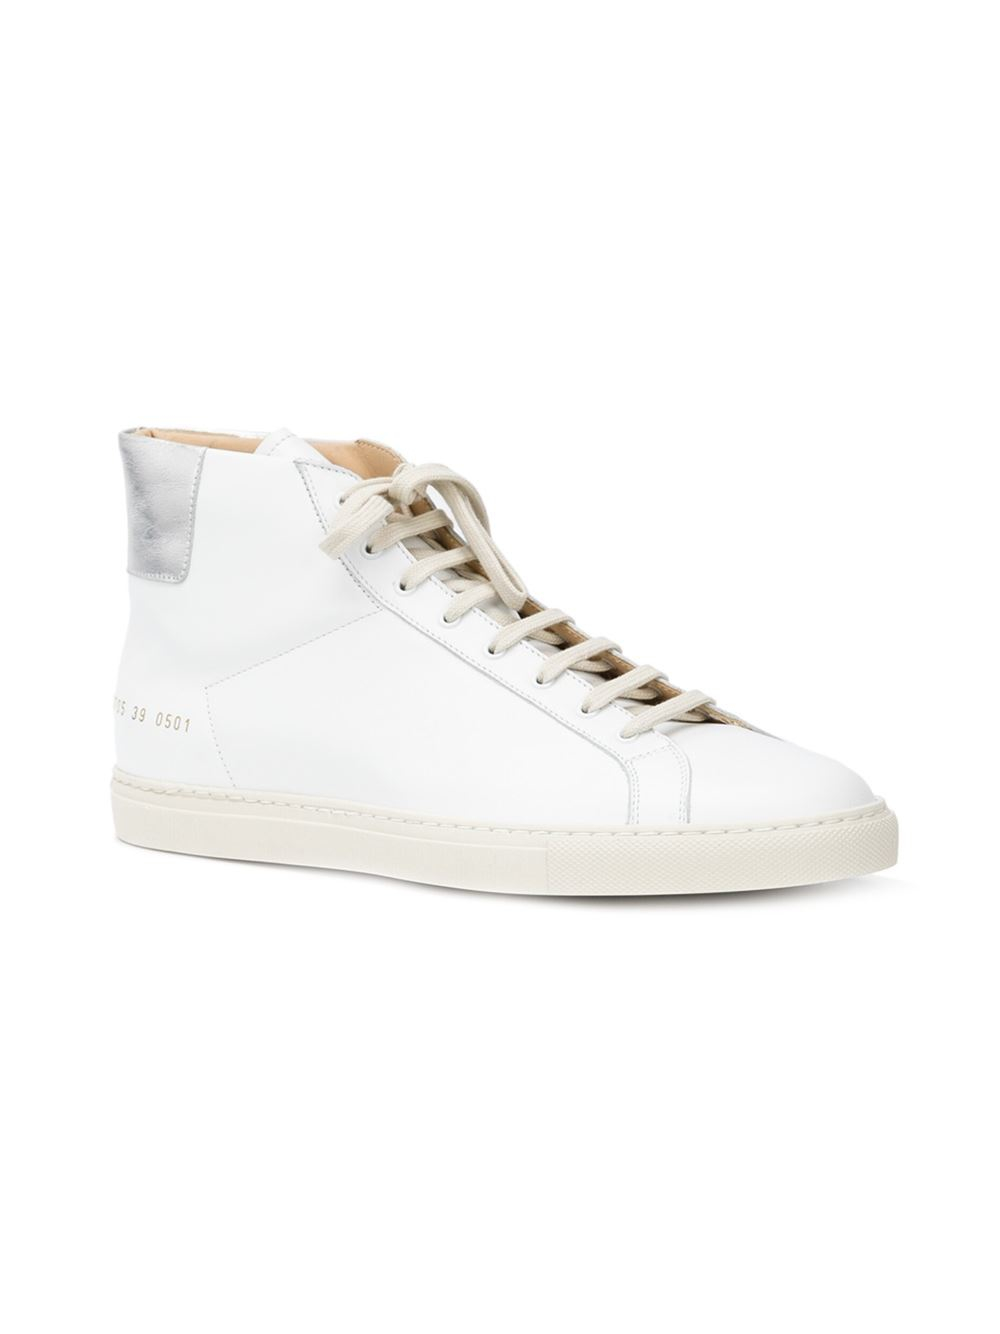 Lyst - Common Projects Achilles Retro Leather High-Top Sneakers in White